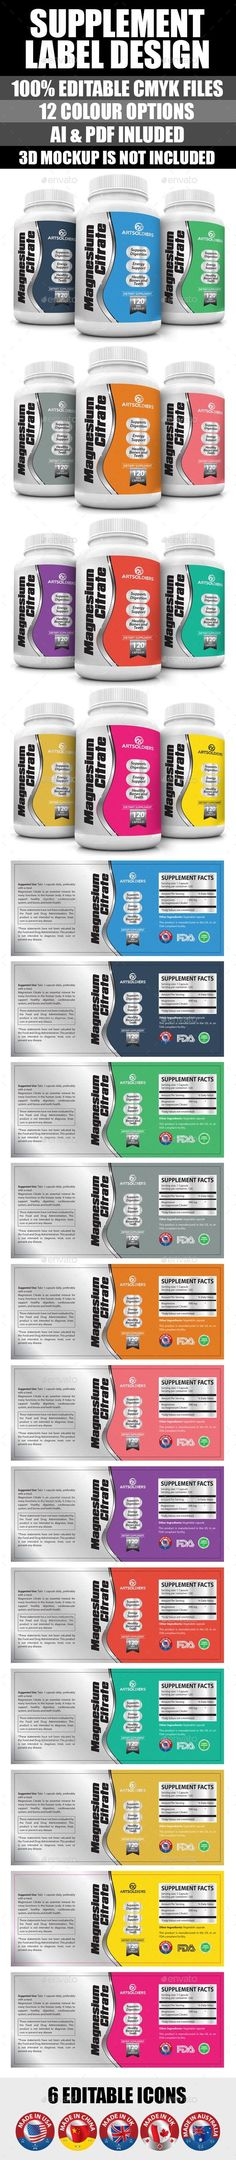 Contest - $50 Product Label Design For a Dietary Supplement - label design templates